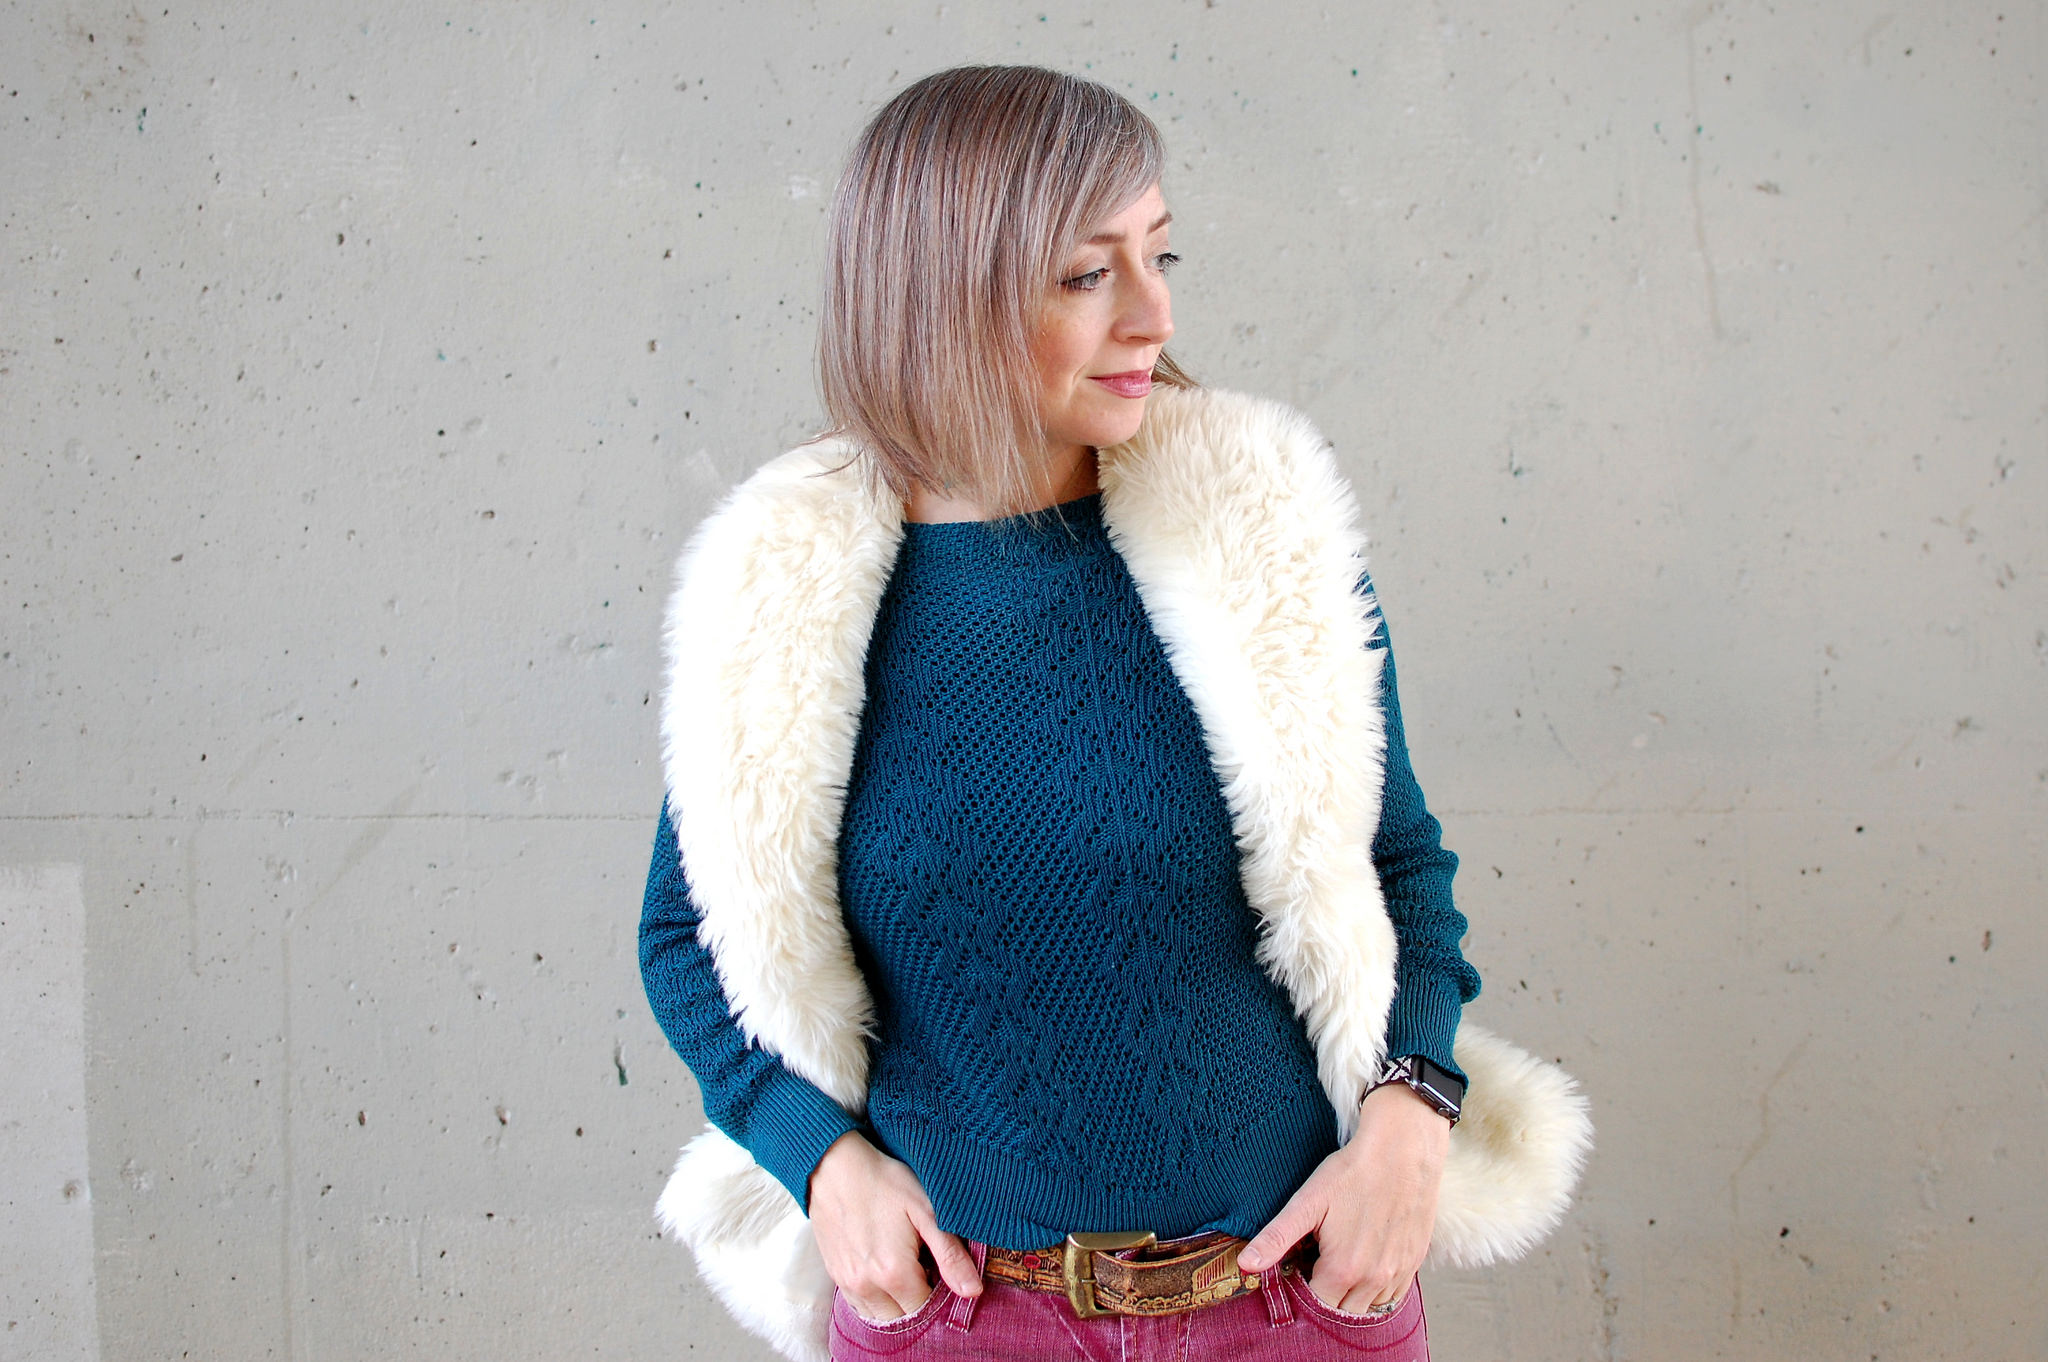 faux fur vest pink jeans daily outfit blog ootd whatiwore2day